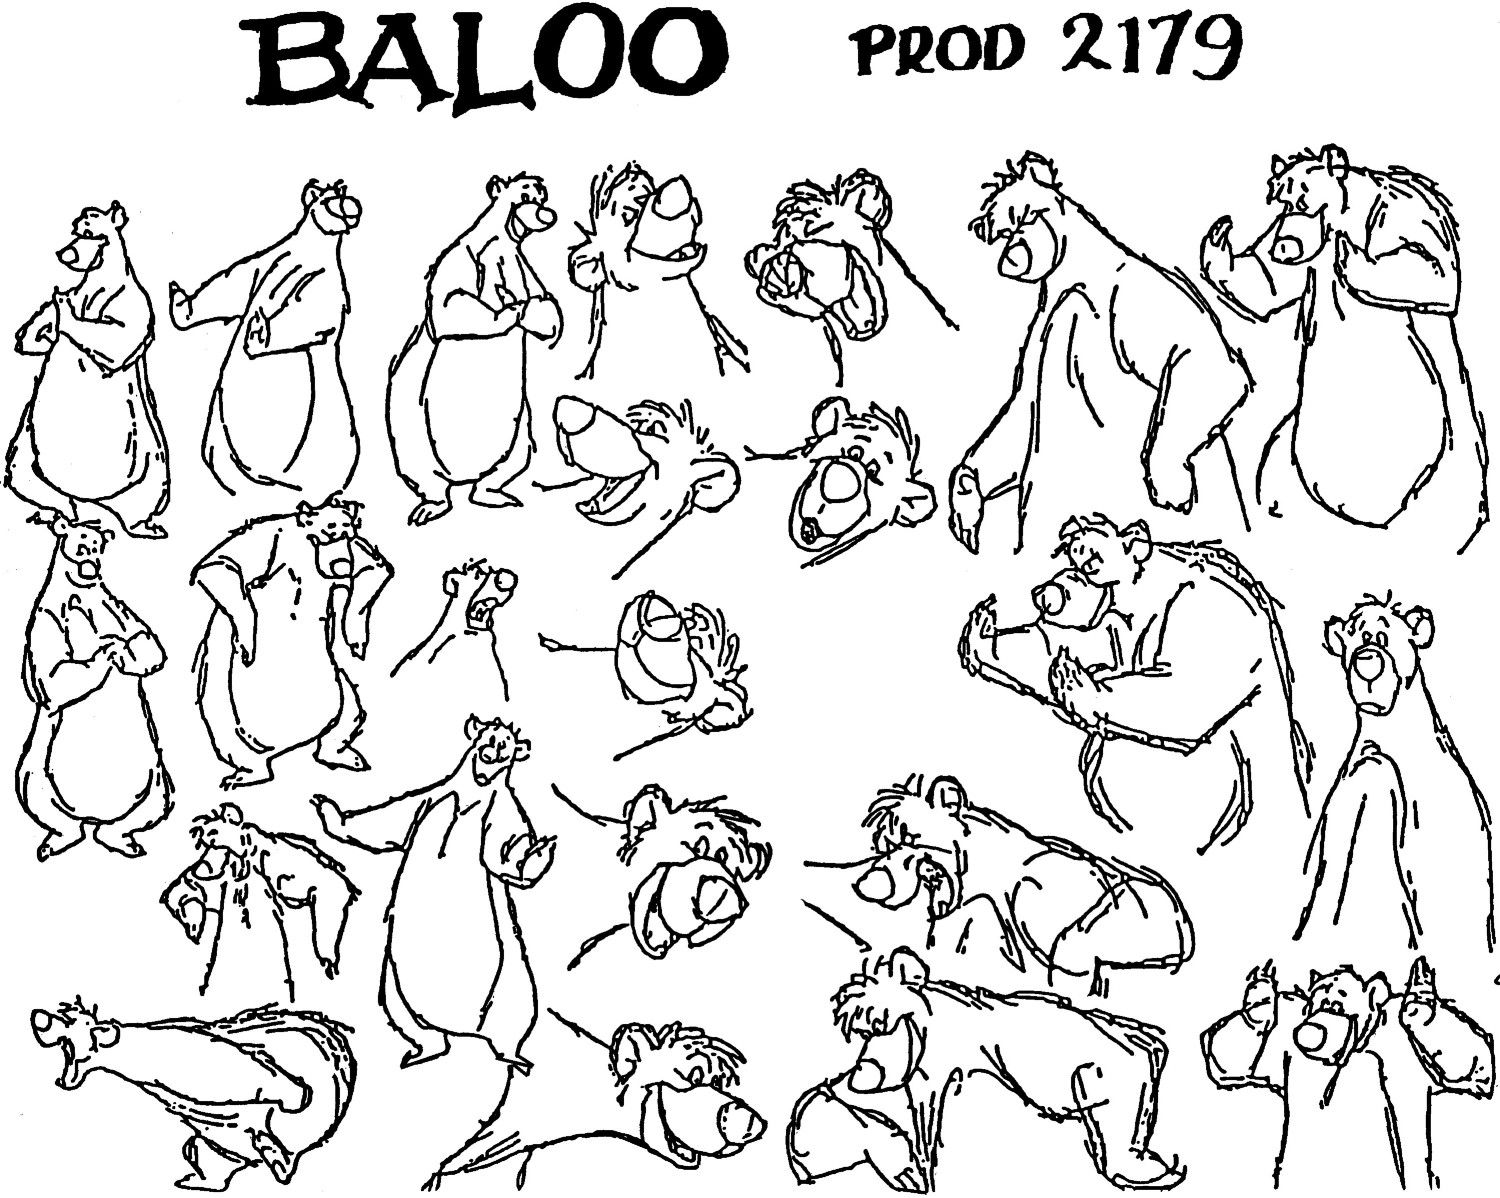 Disney Character Design Book : Baloo jungle book http animationarchive feature